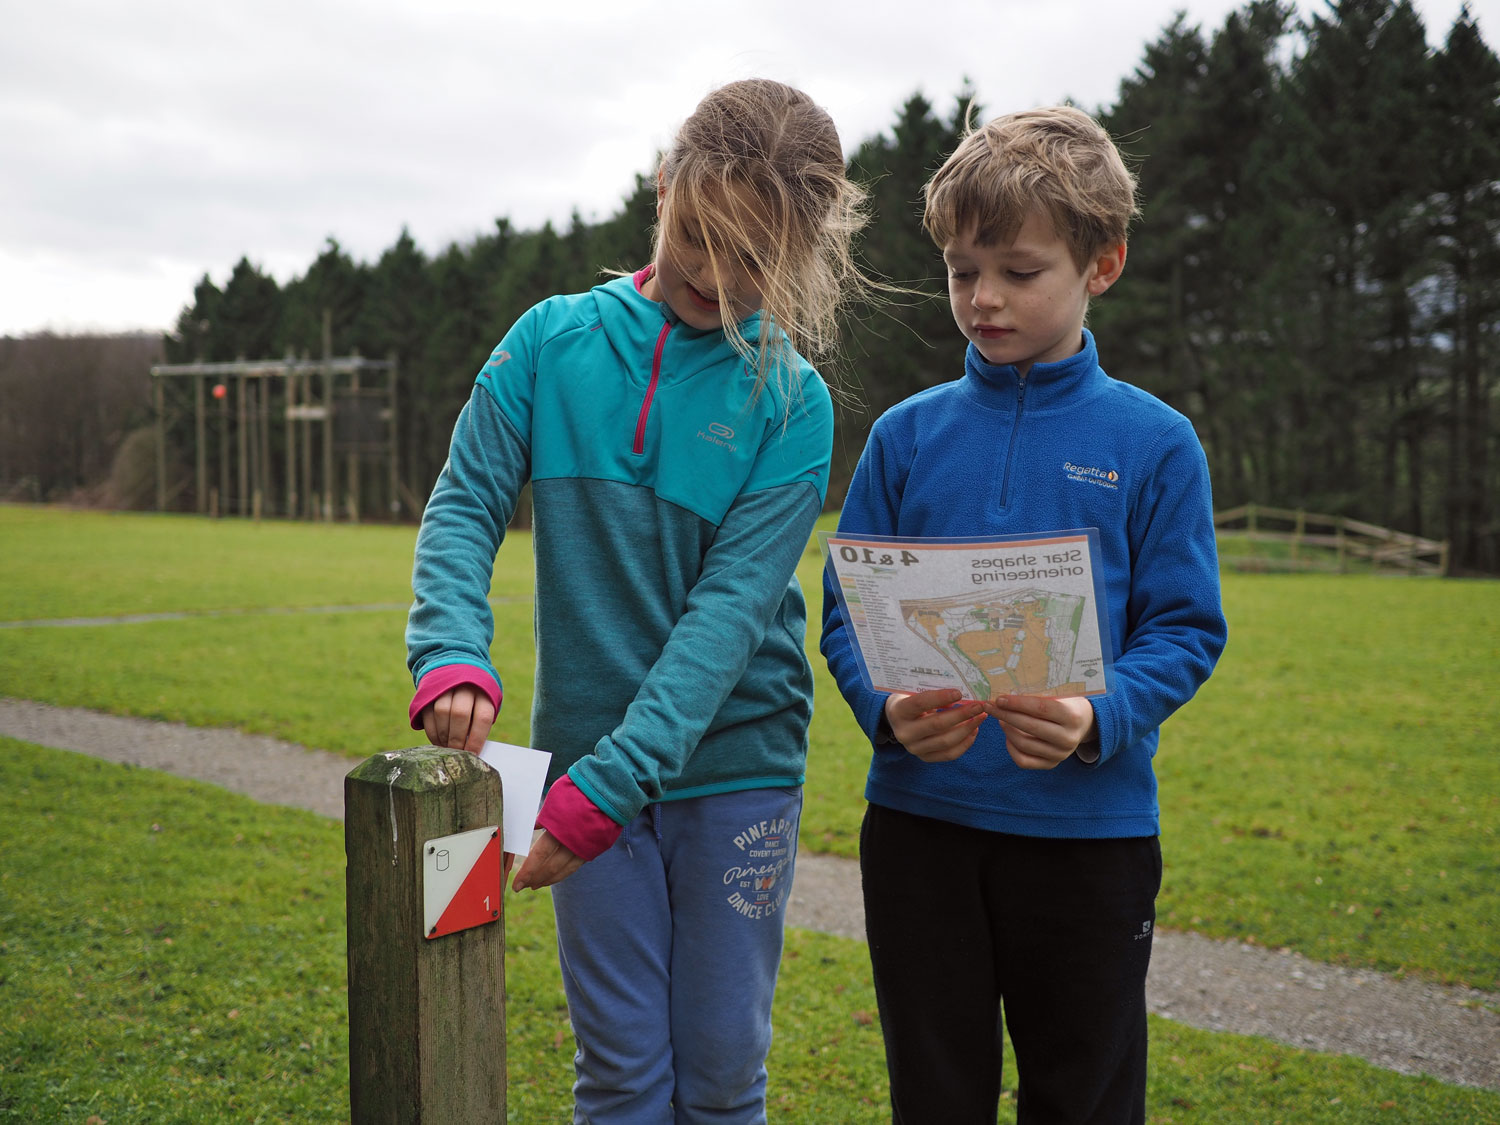 2 children orienteering (onsite ground-based) at Thornbridge Outdoors